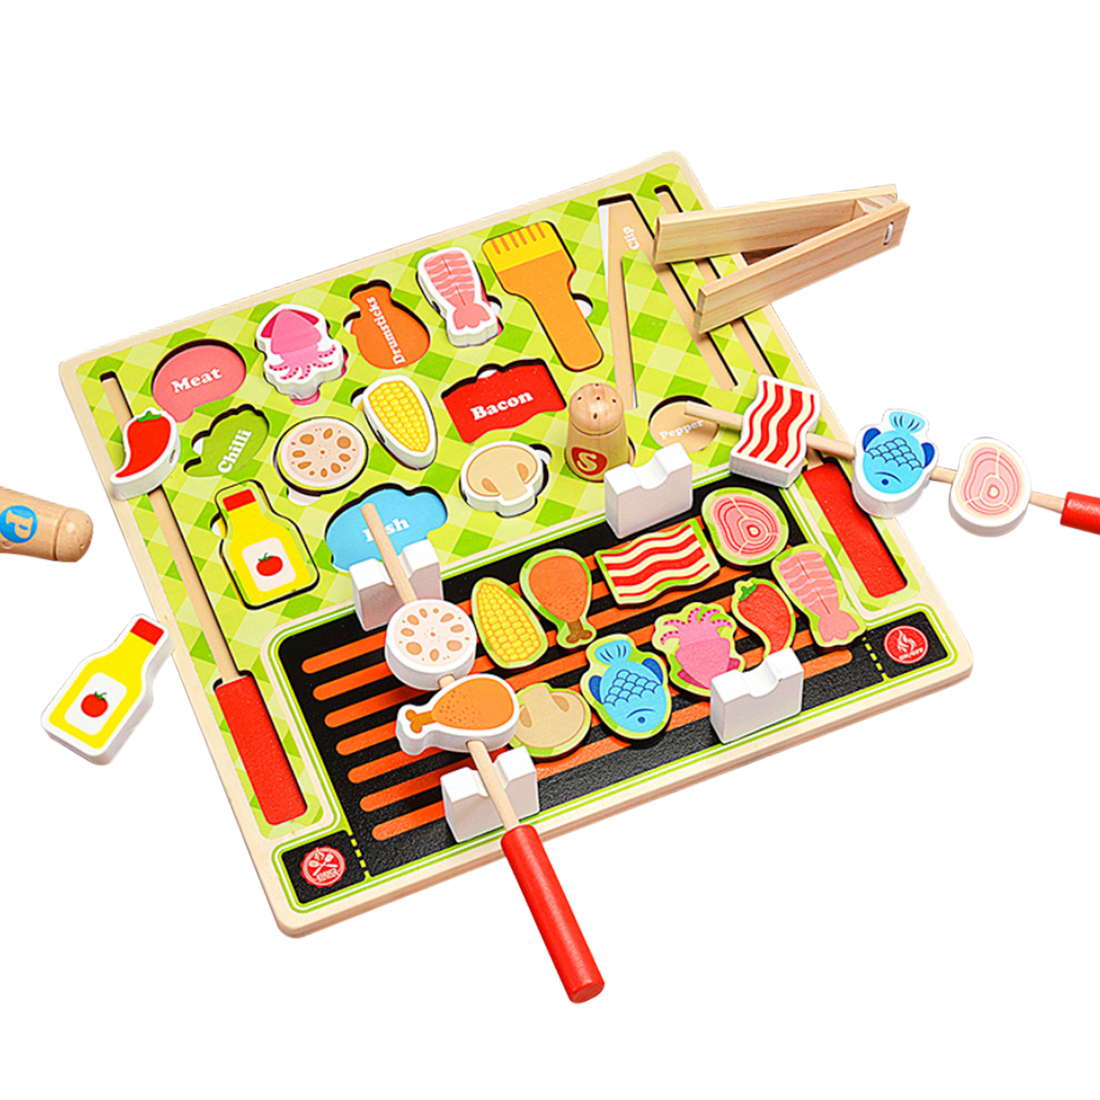 Children Pretend Play Kitchen Toys Wooden Simulation Food Cutting Barbecue Fruit Supermarket Set Kids Toddler Playing Learning